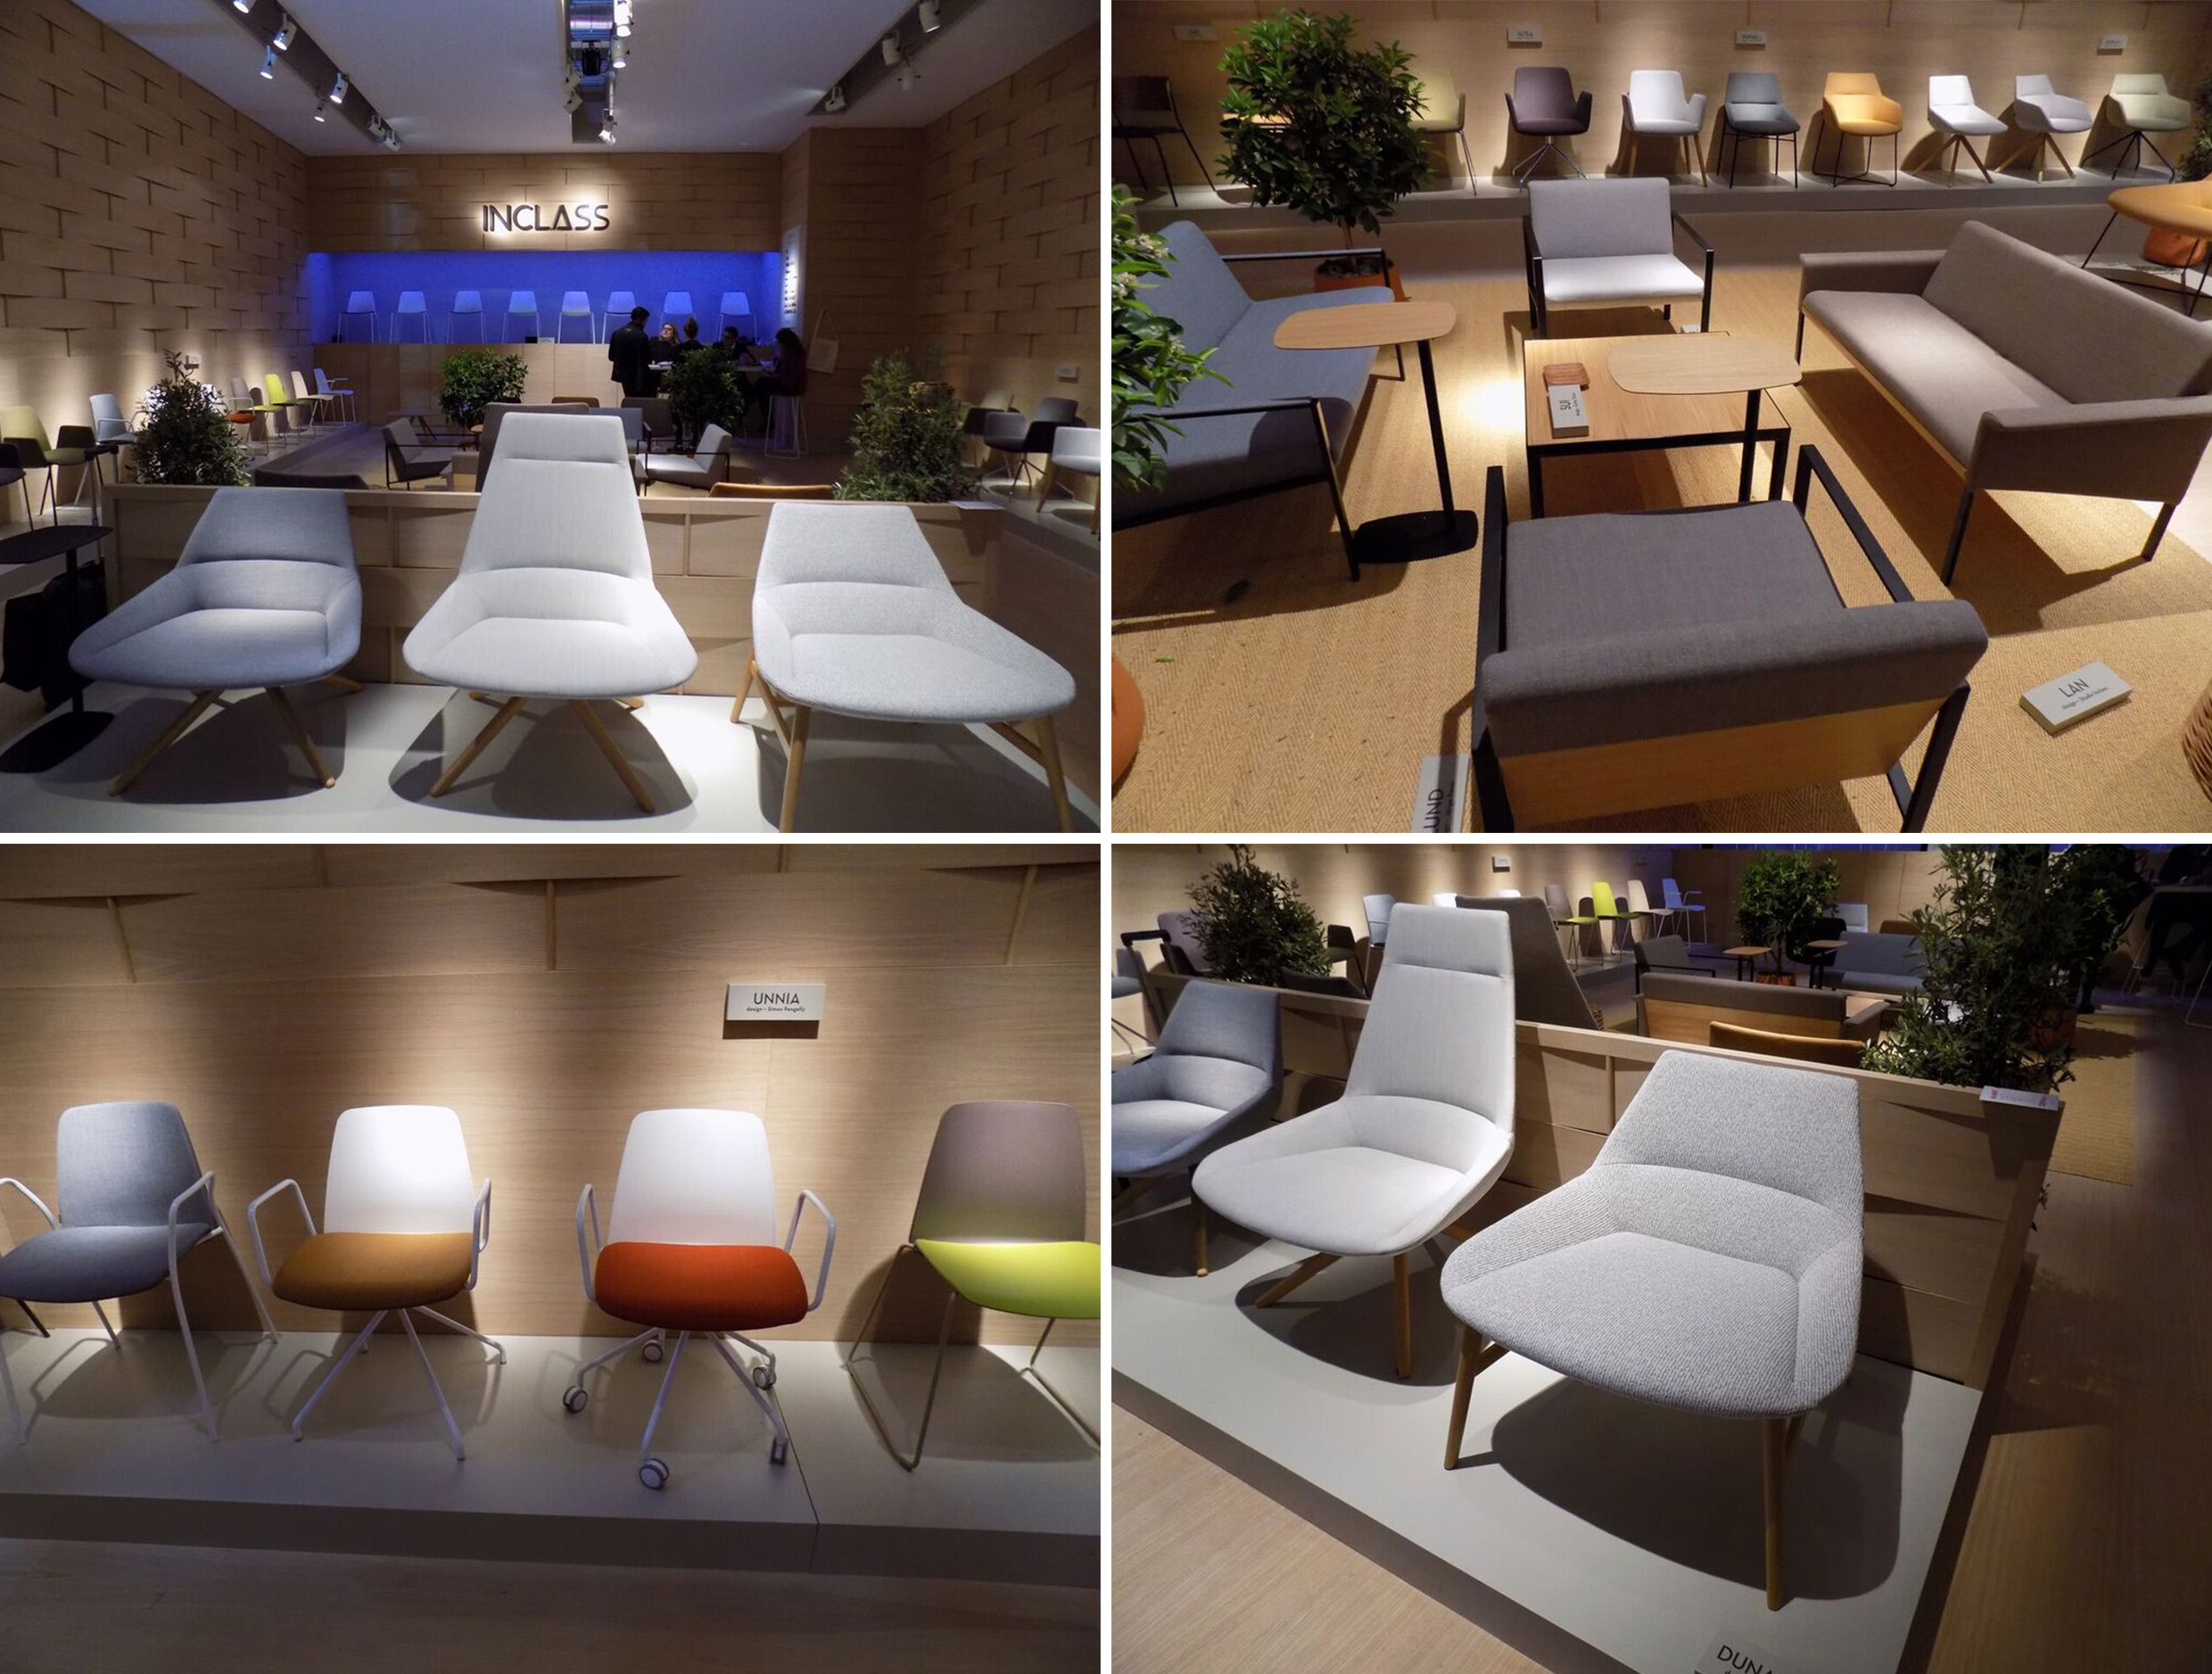 Inclass Salone Del Mobile 2016